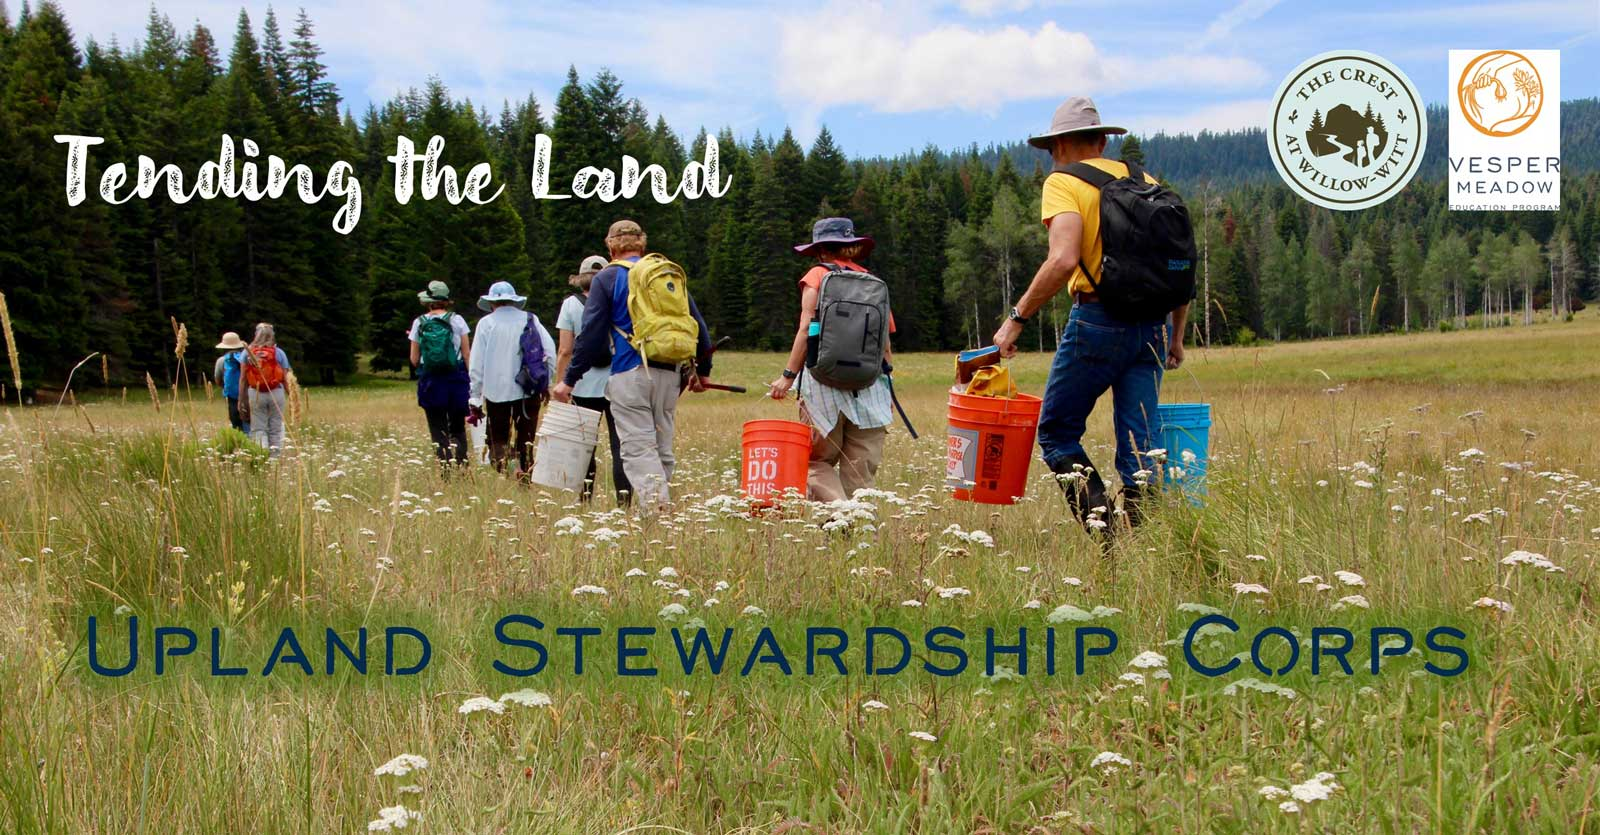 Upland Stewardship Corps volunteer registration